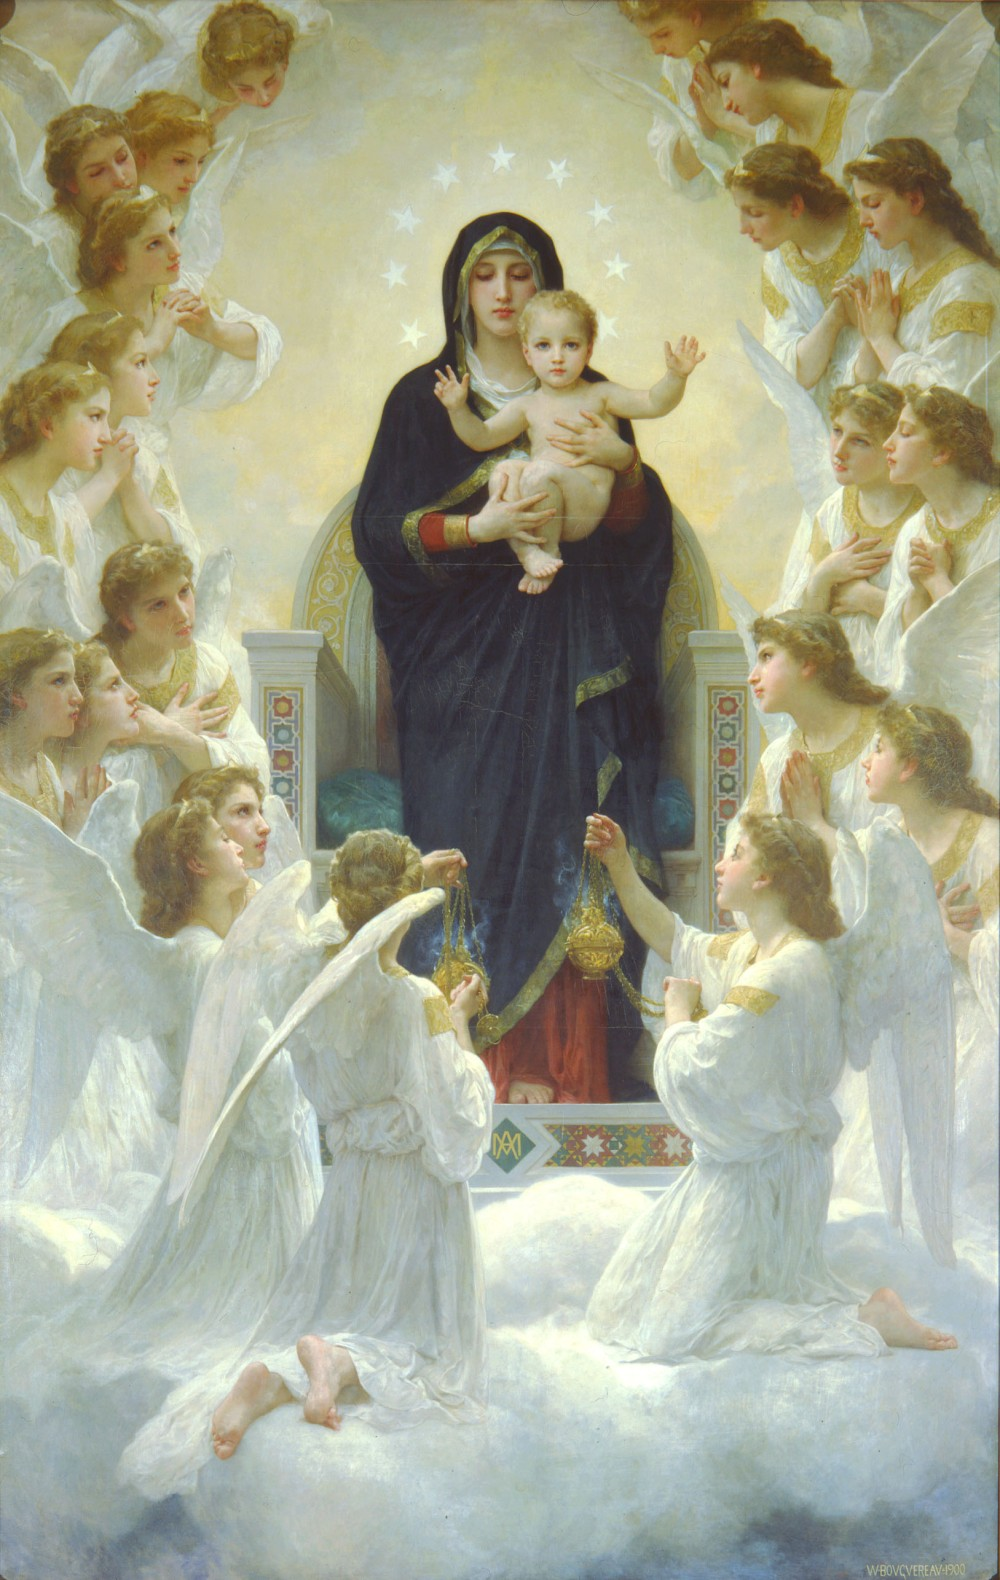 05. The Virgin With Angels (1900) William-Adolphe Bouguereau.jpg